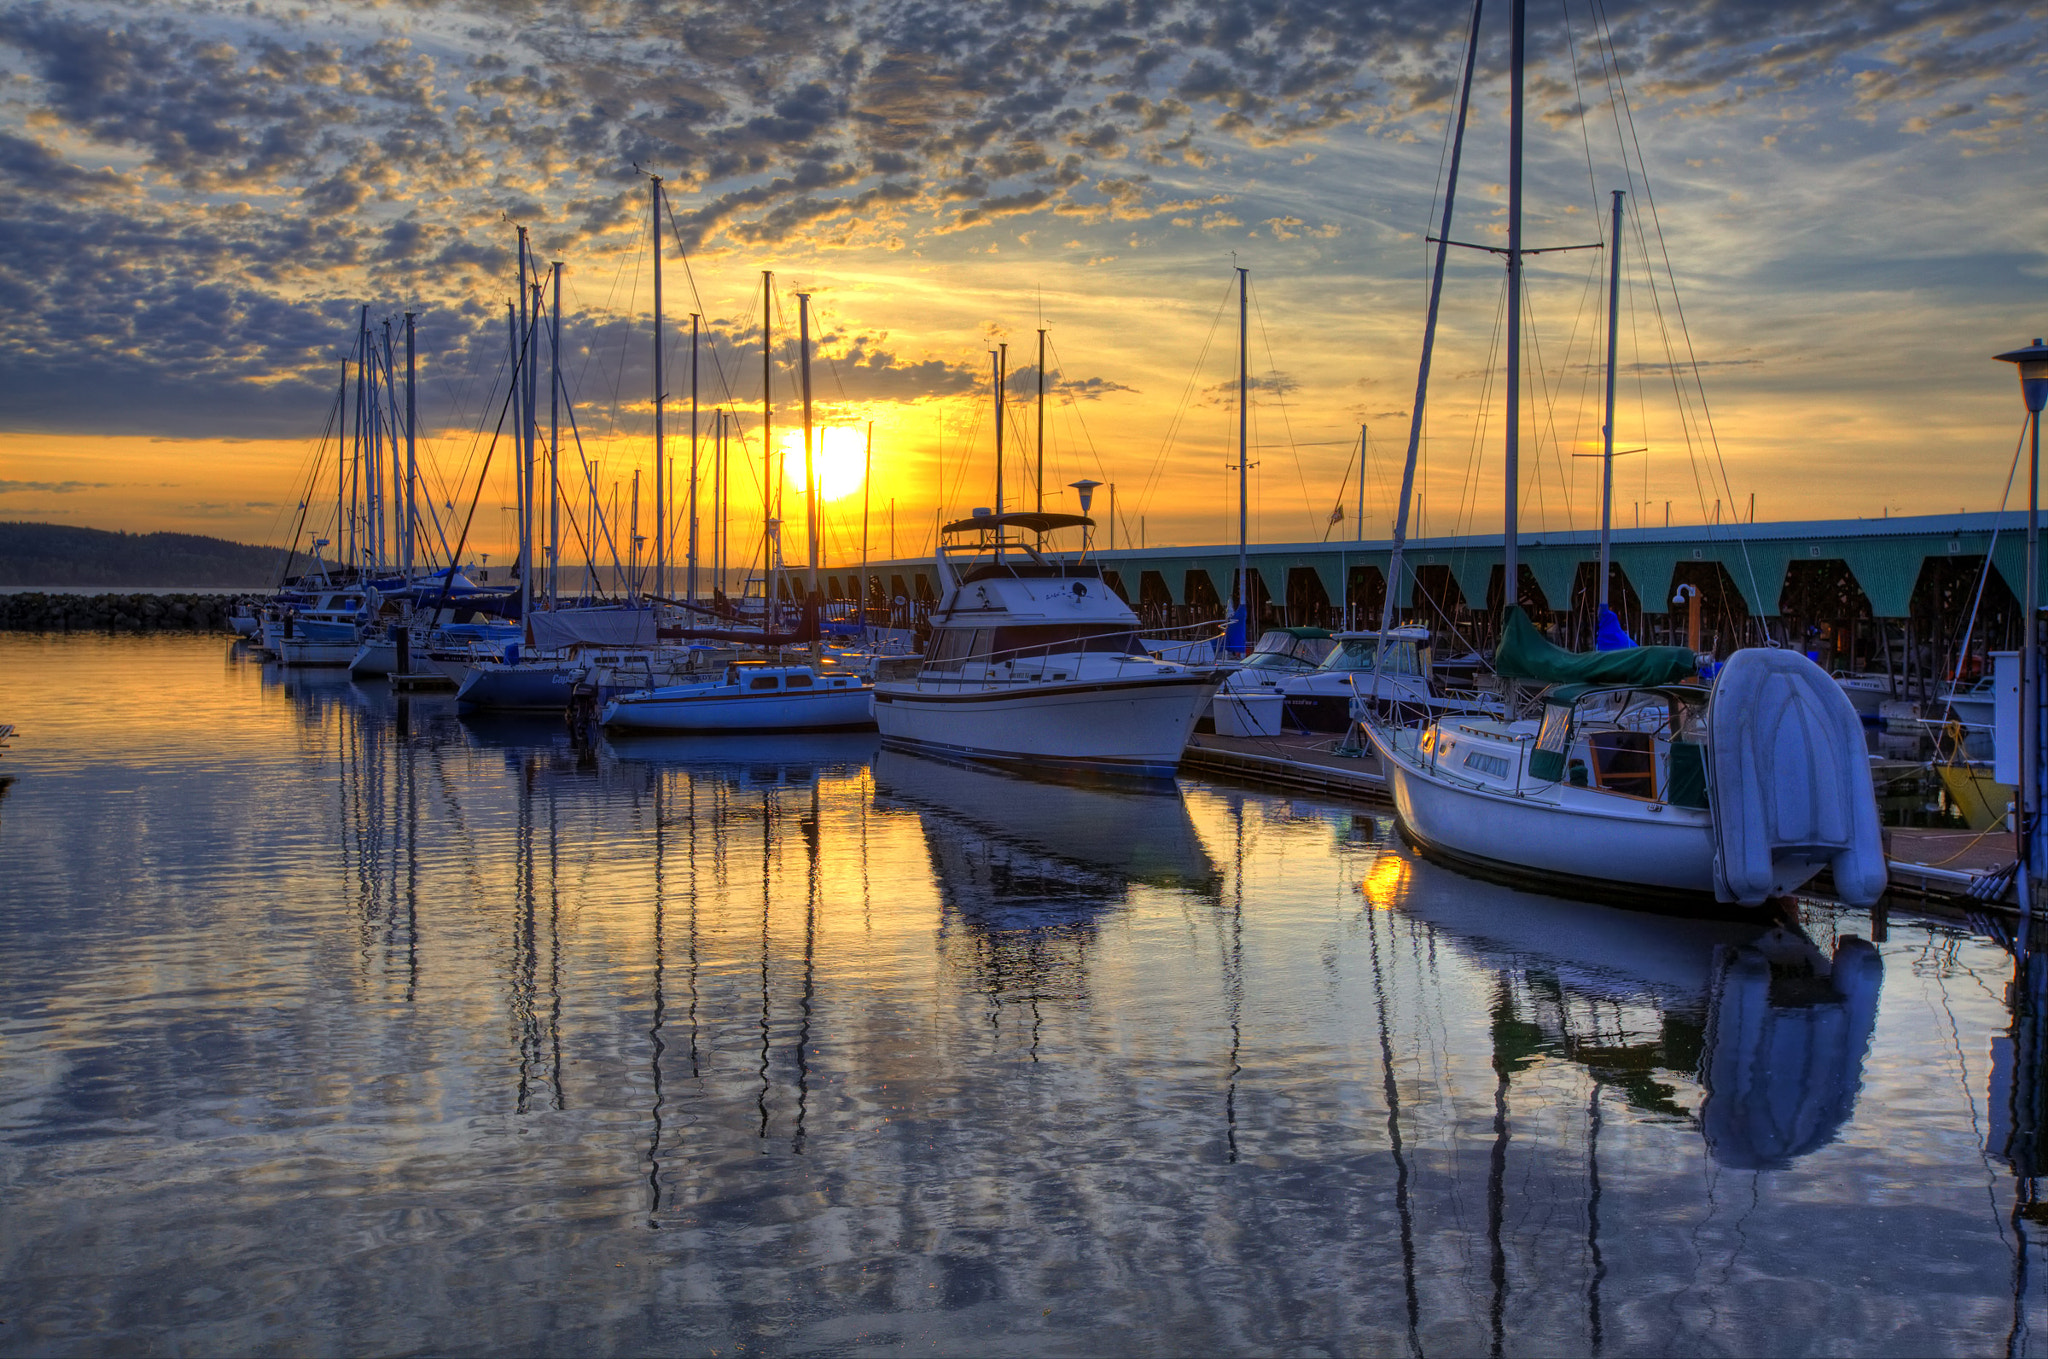 Photograph Sunset at the Marina by Layne Freedle on 500px